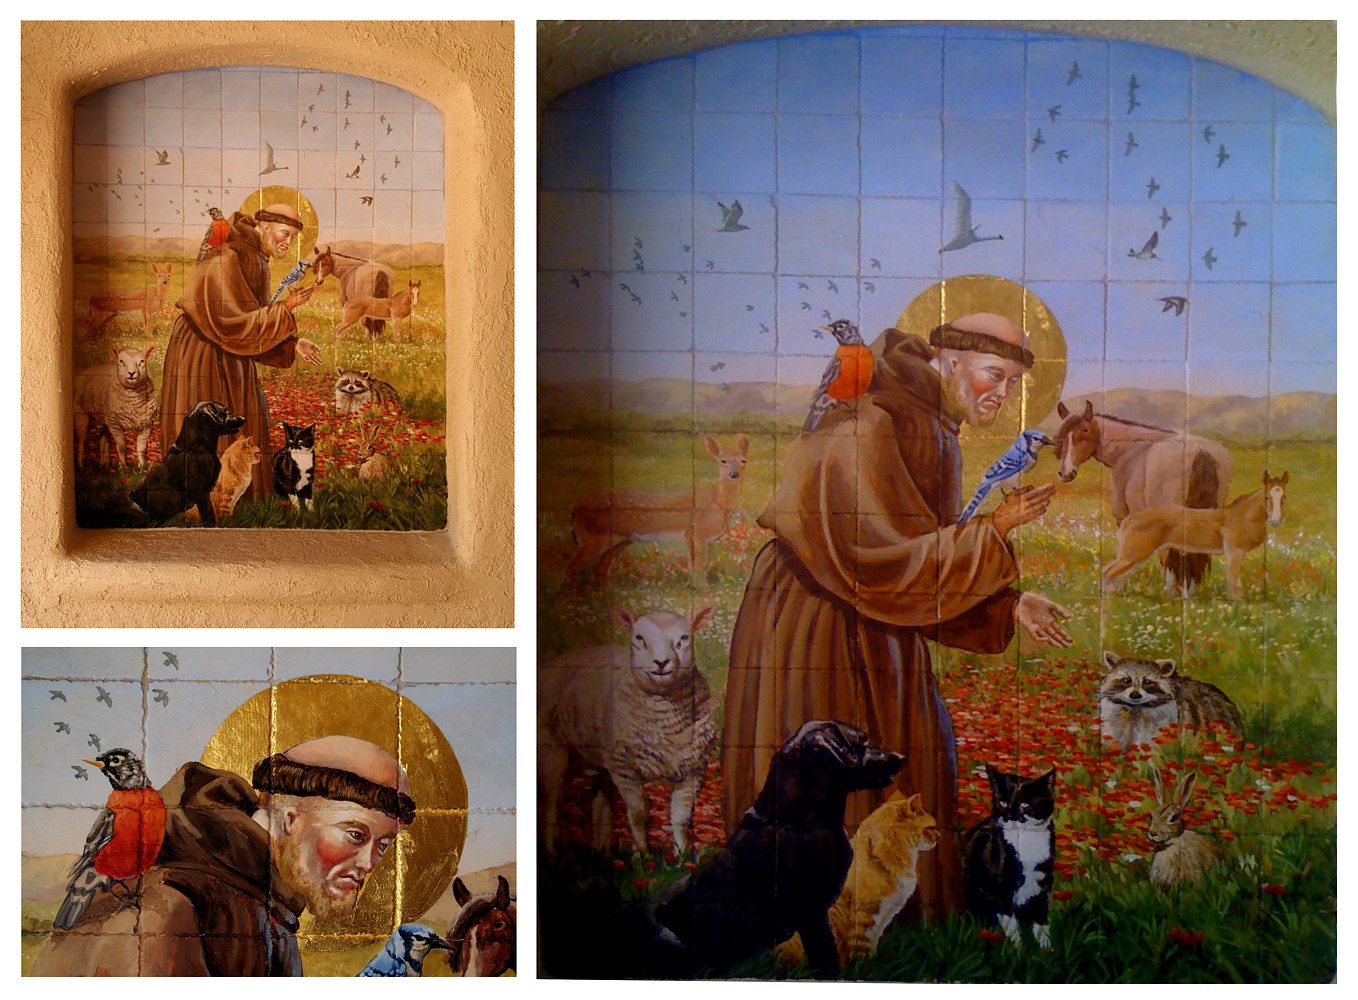 St Francis Alcove Mural in Entry Palos Verdes by Robert Milling